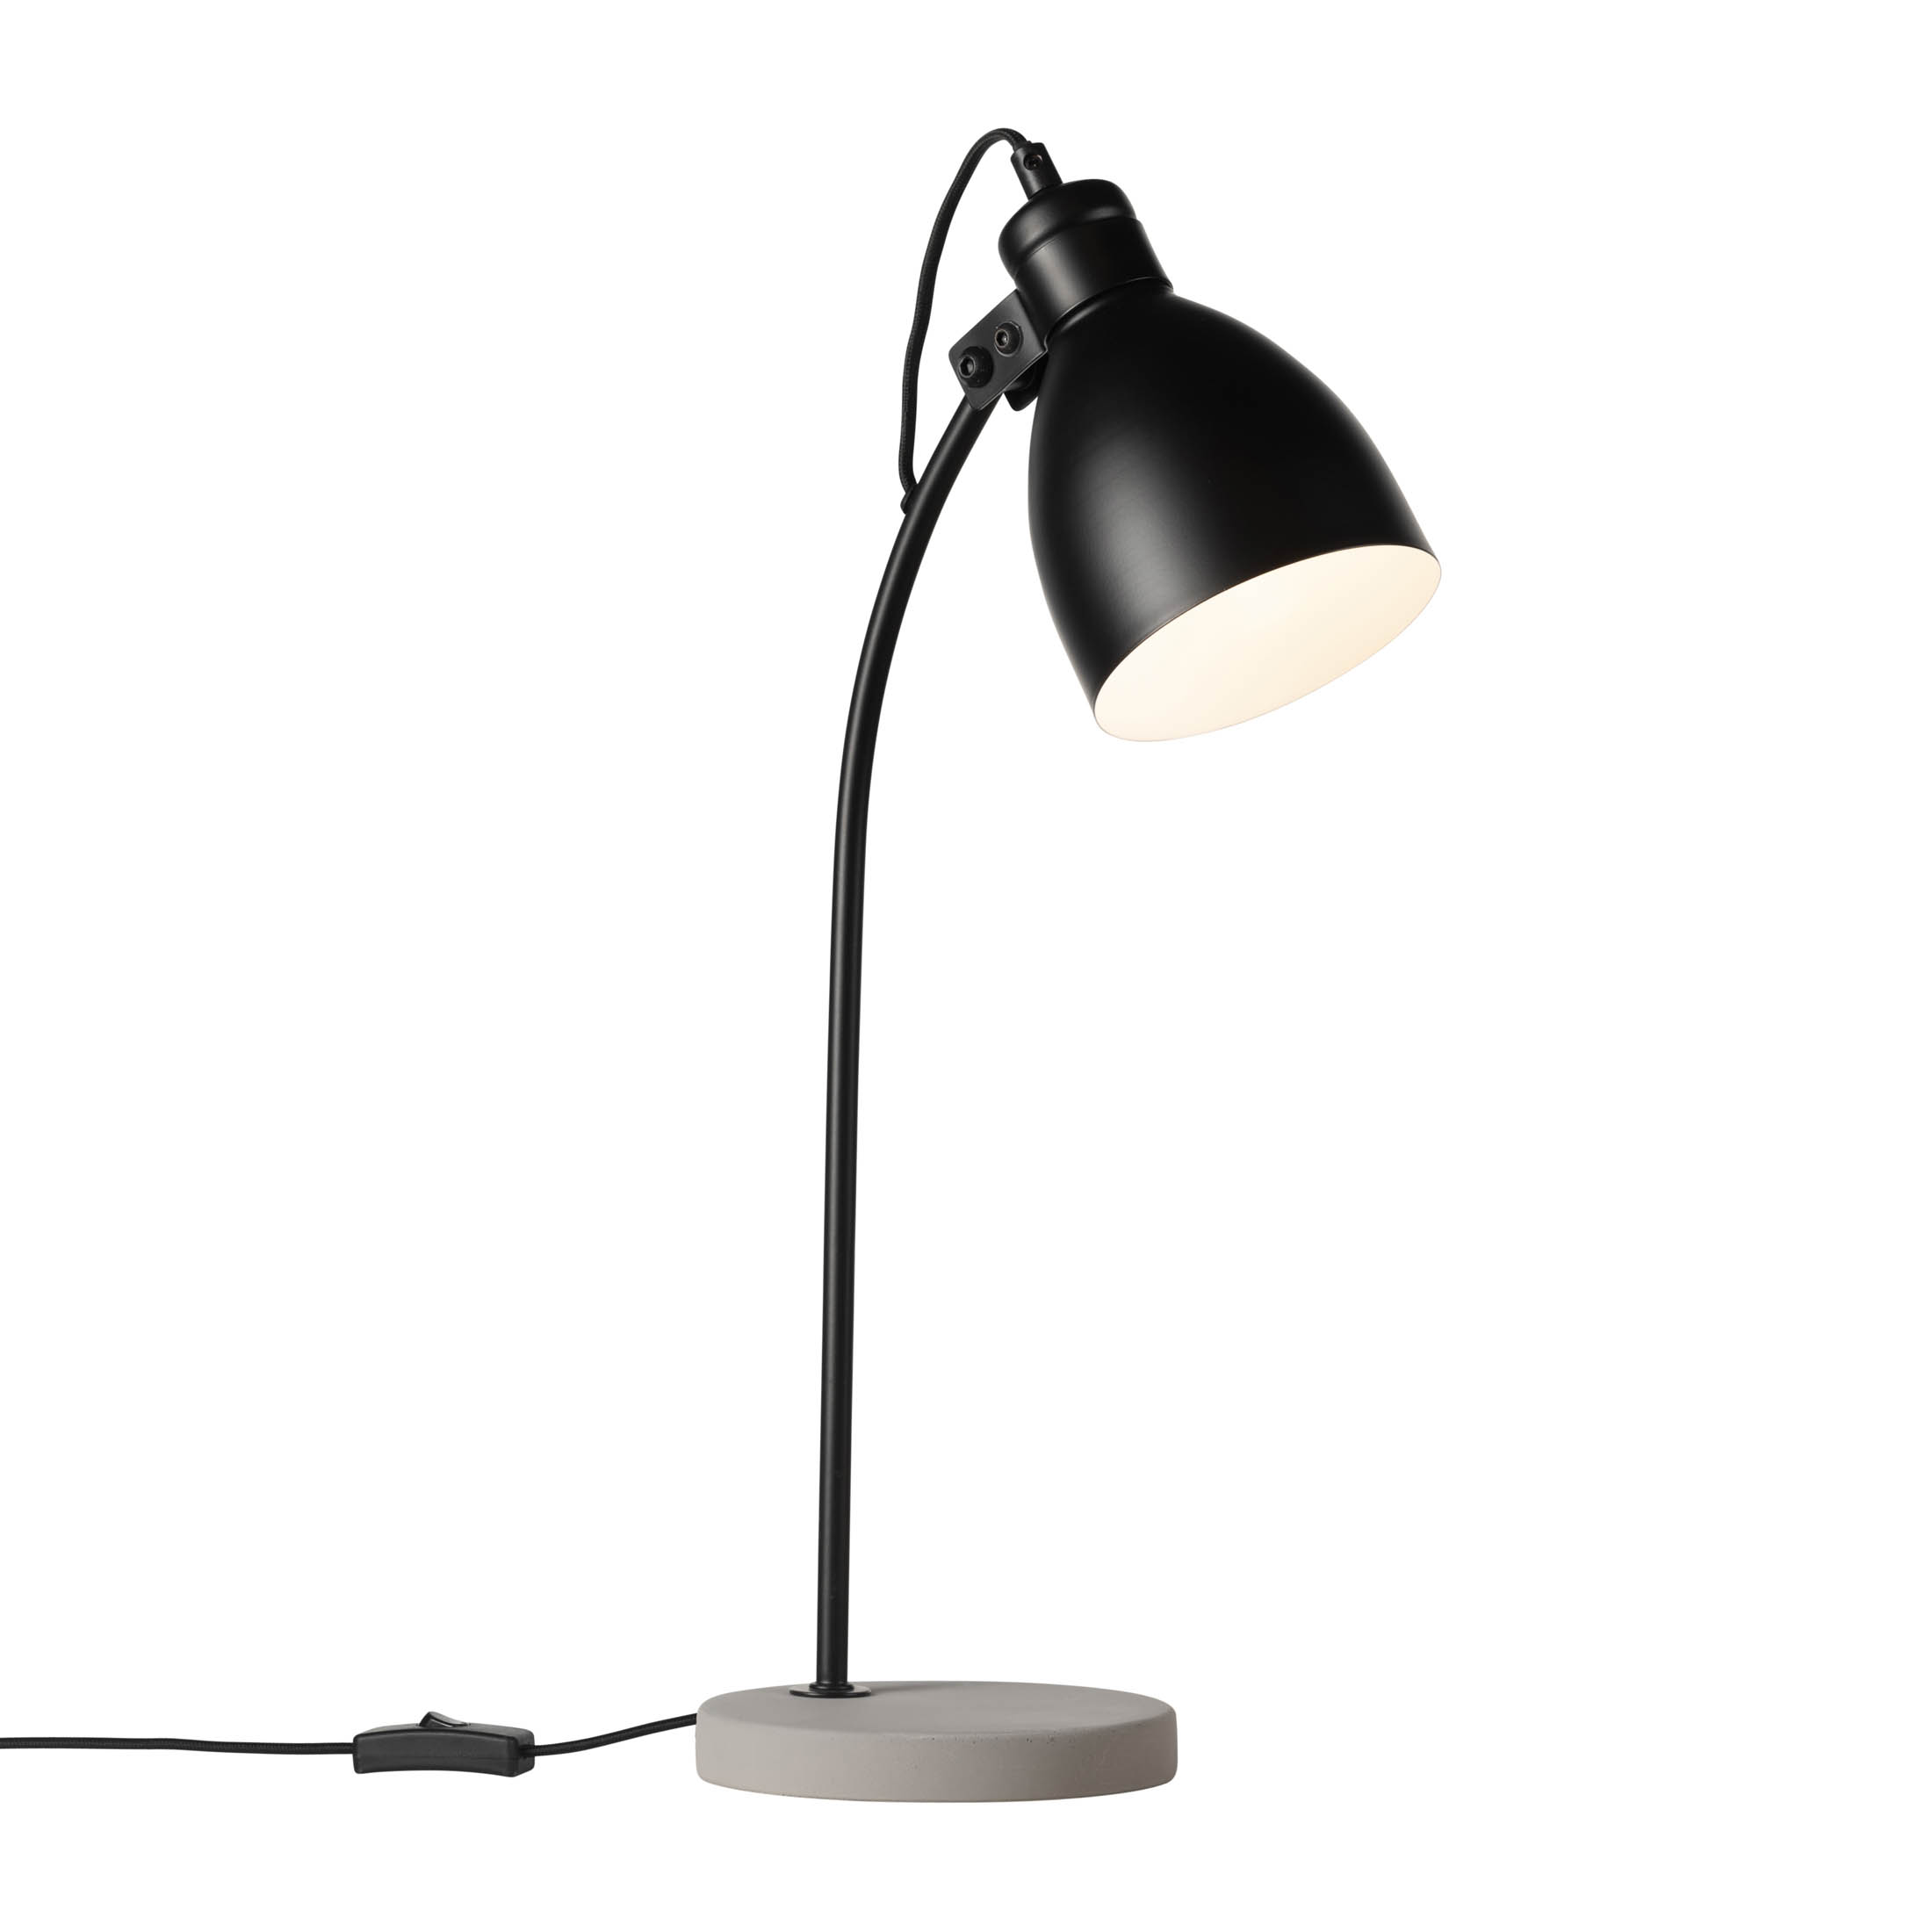 Rayray Desk Lamp